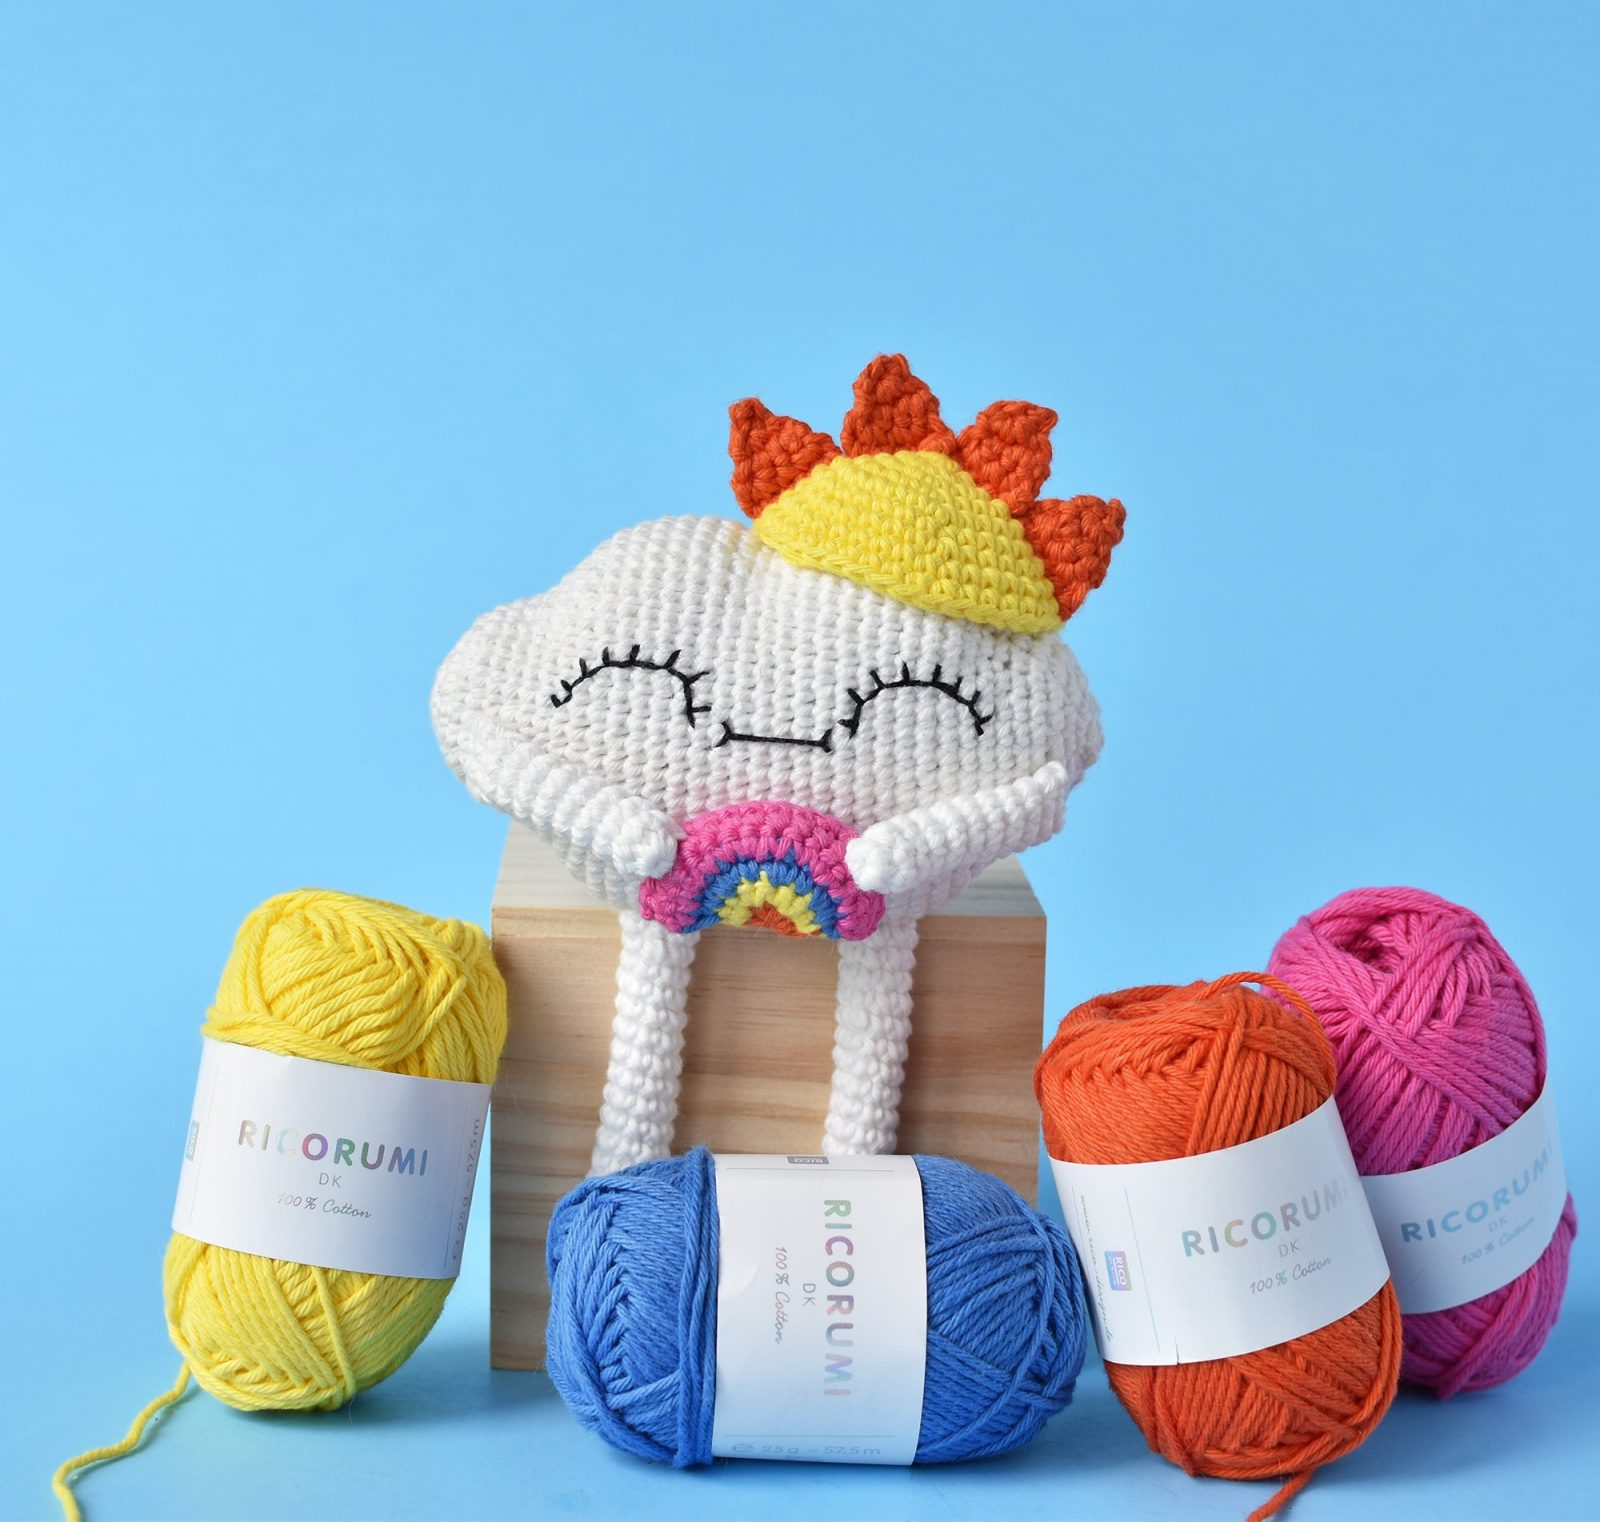 Amigurumi rainbow cloud crochet doll with a sun hat holding a rainbow sitting on a wooden box surrounded by balls of yarn for the rainbow.